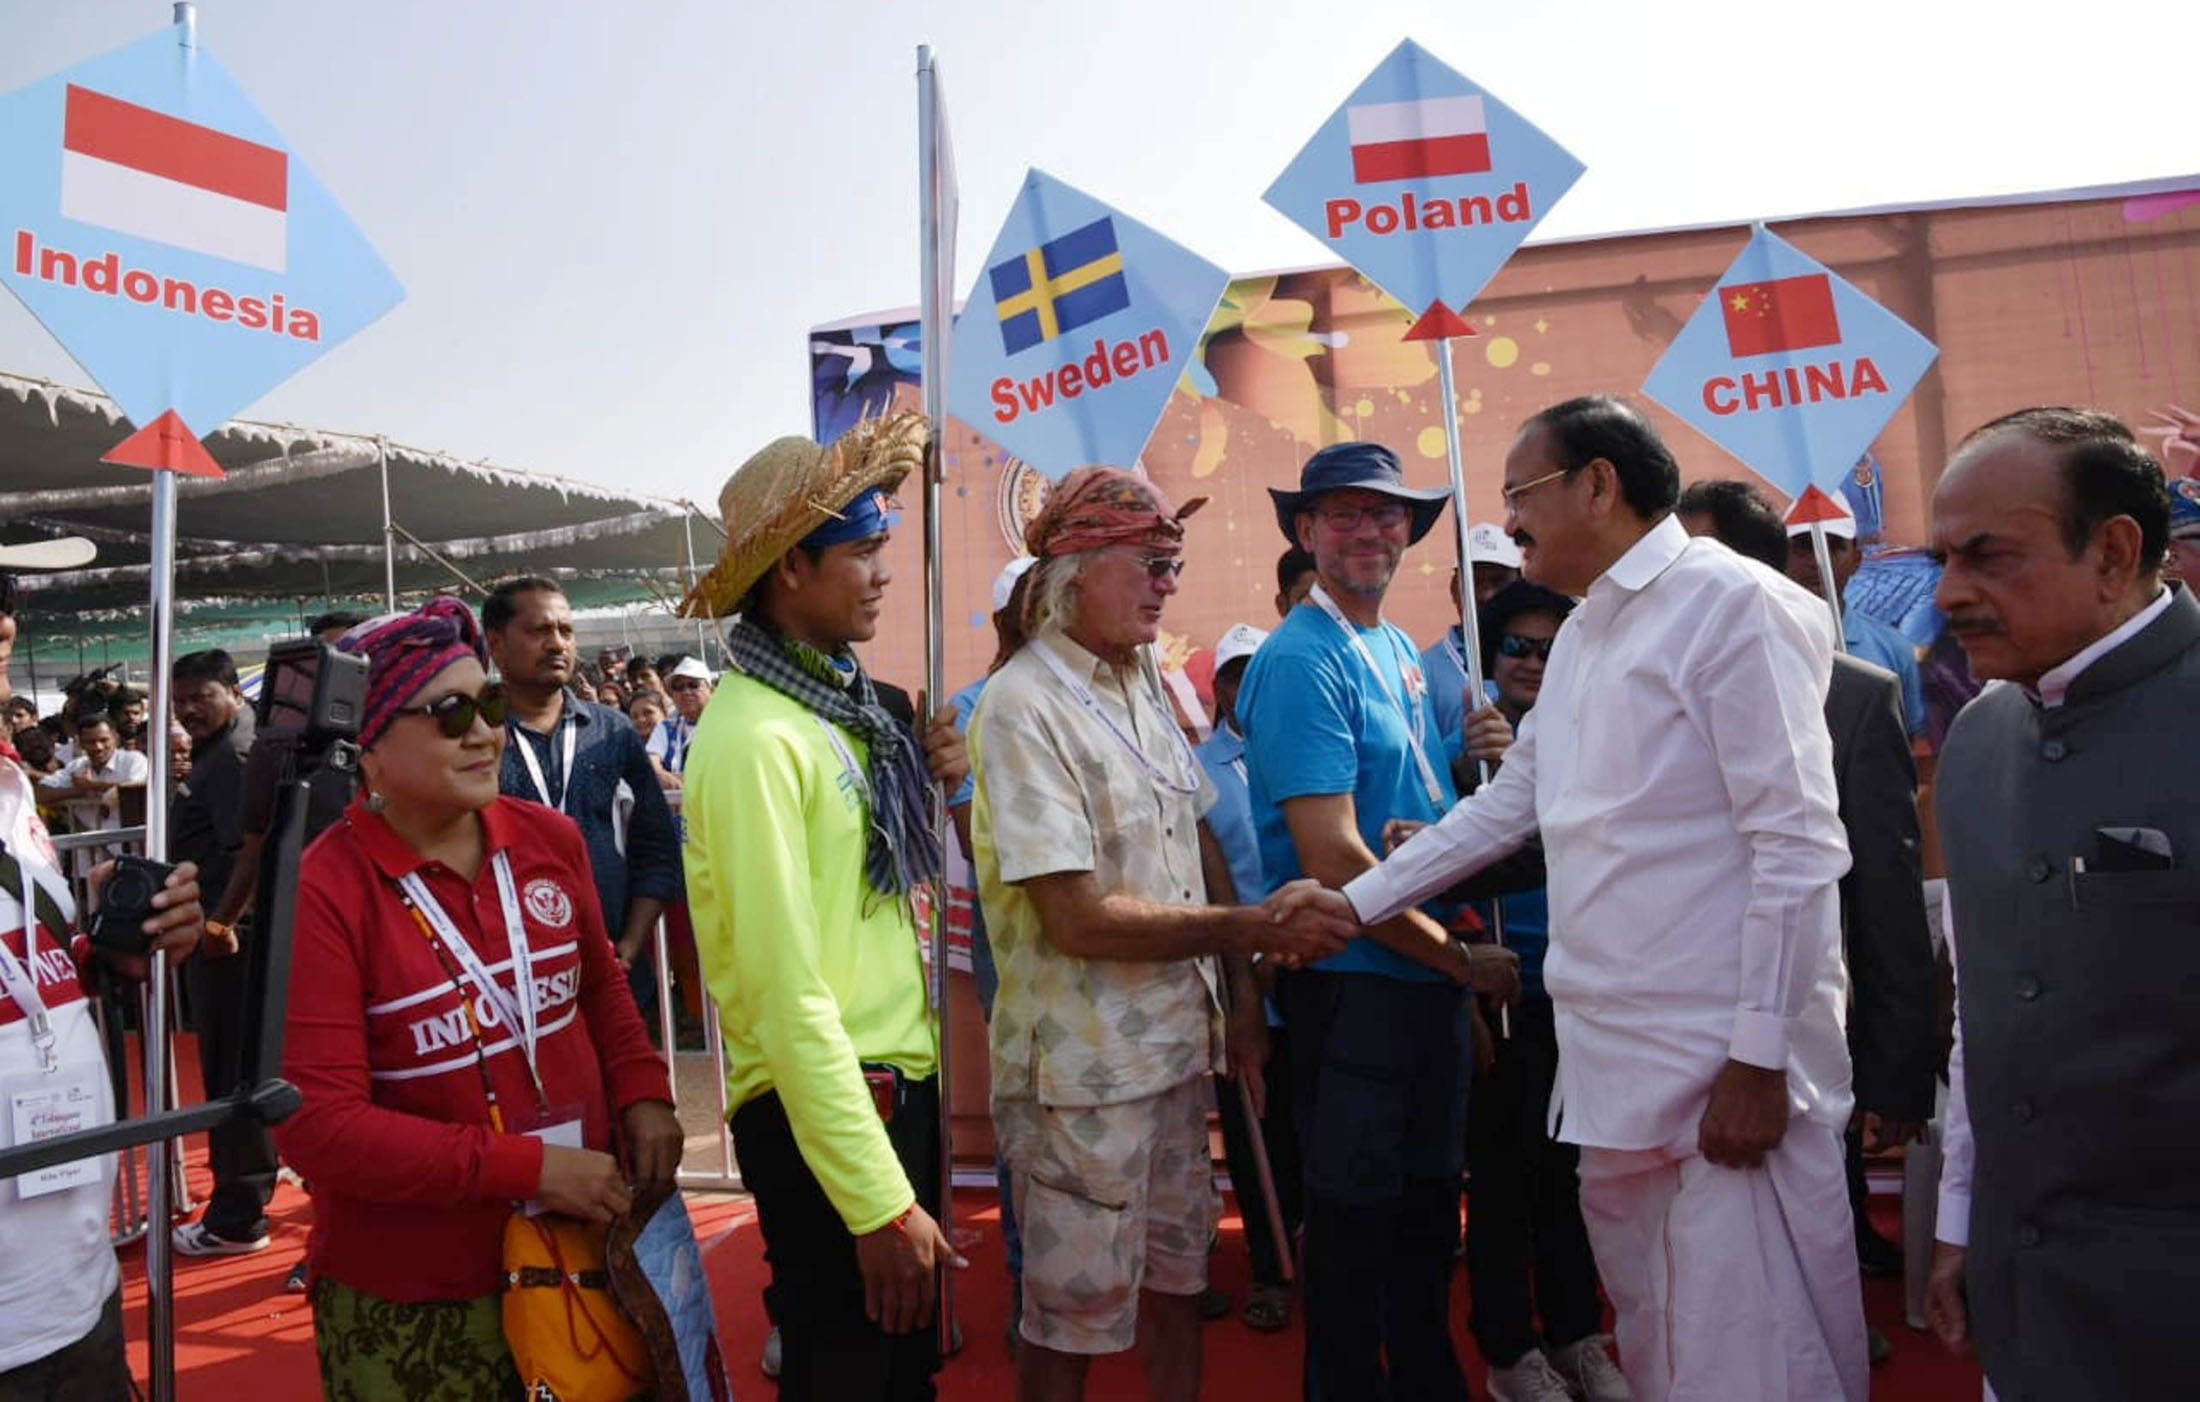 Vice President M. Venkaiah Naidu interacting with the participants of the 4th Telangana International Kite Festival and Sweets Festival, in Hyderabad, Telangana on January 12, 2018. The Home Minister of Telangana, Mohammed Mahmood Ali is also seen. (PIB Photo)